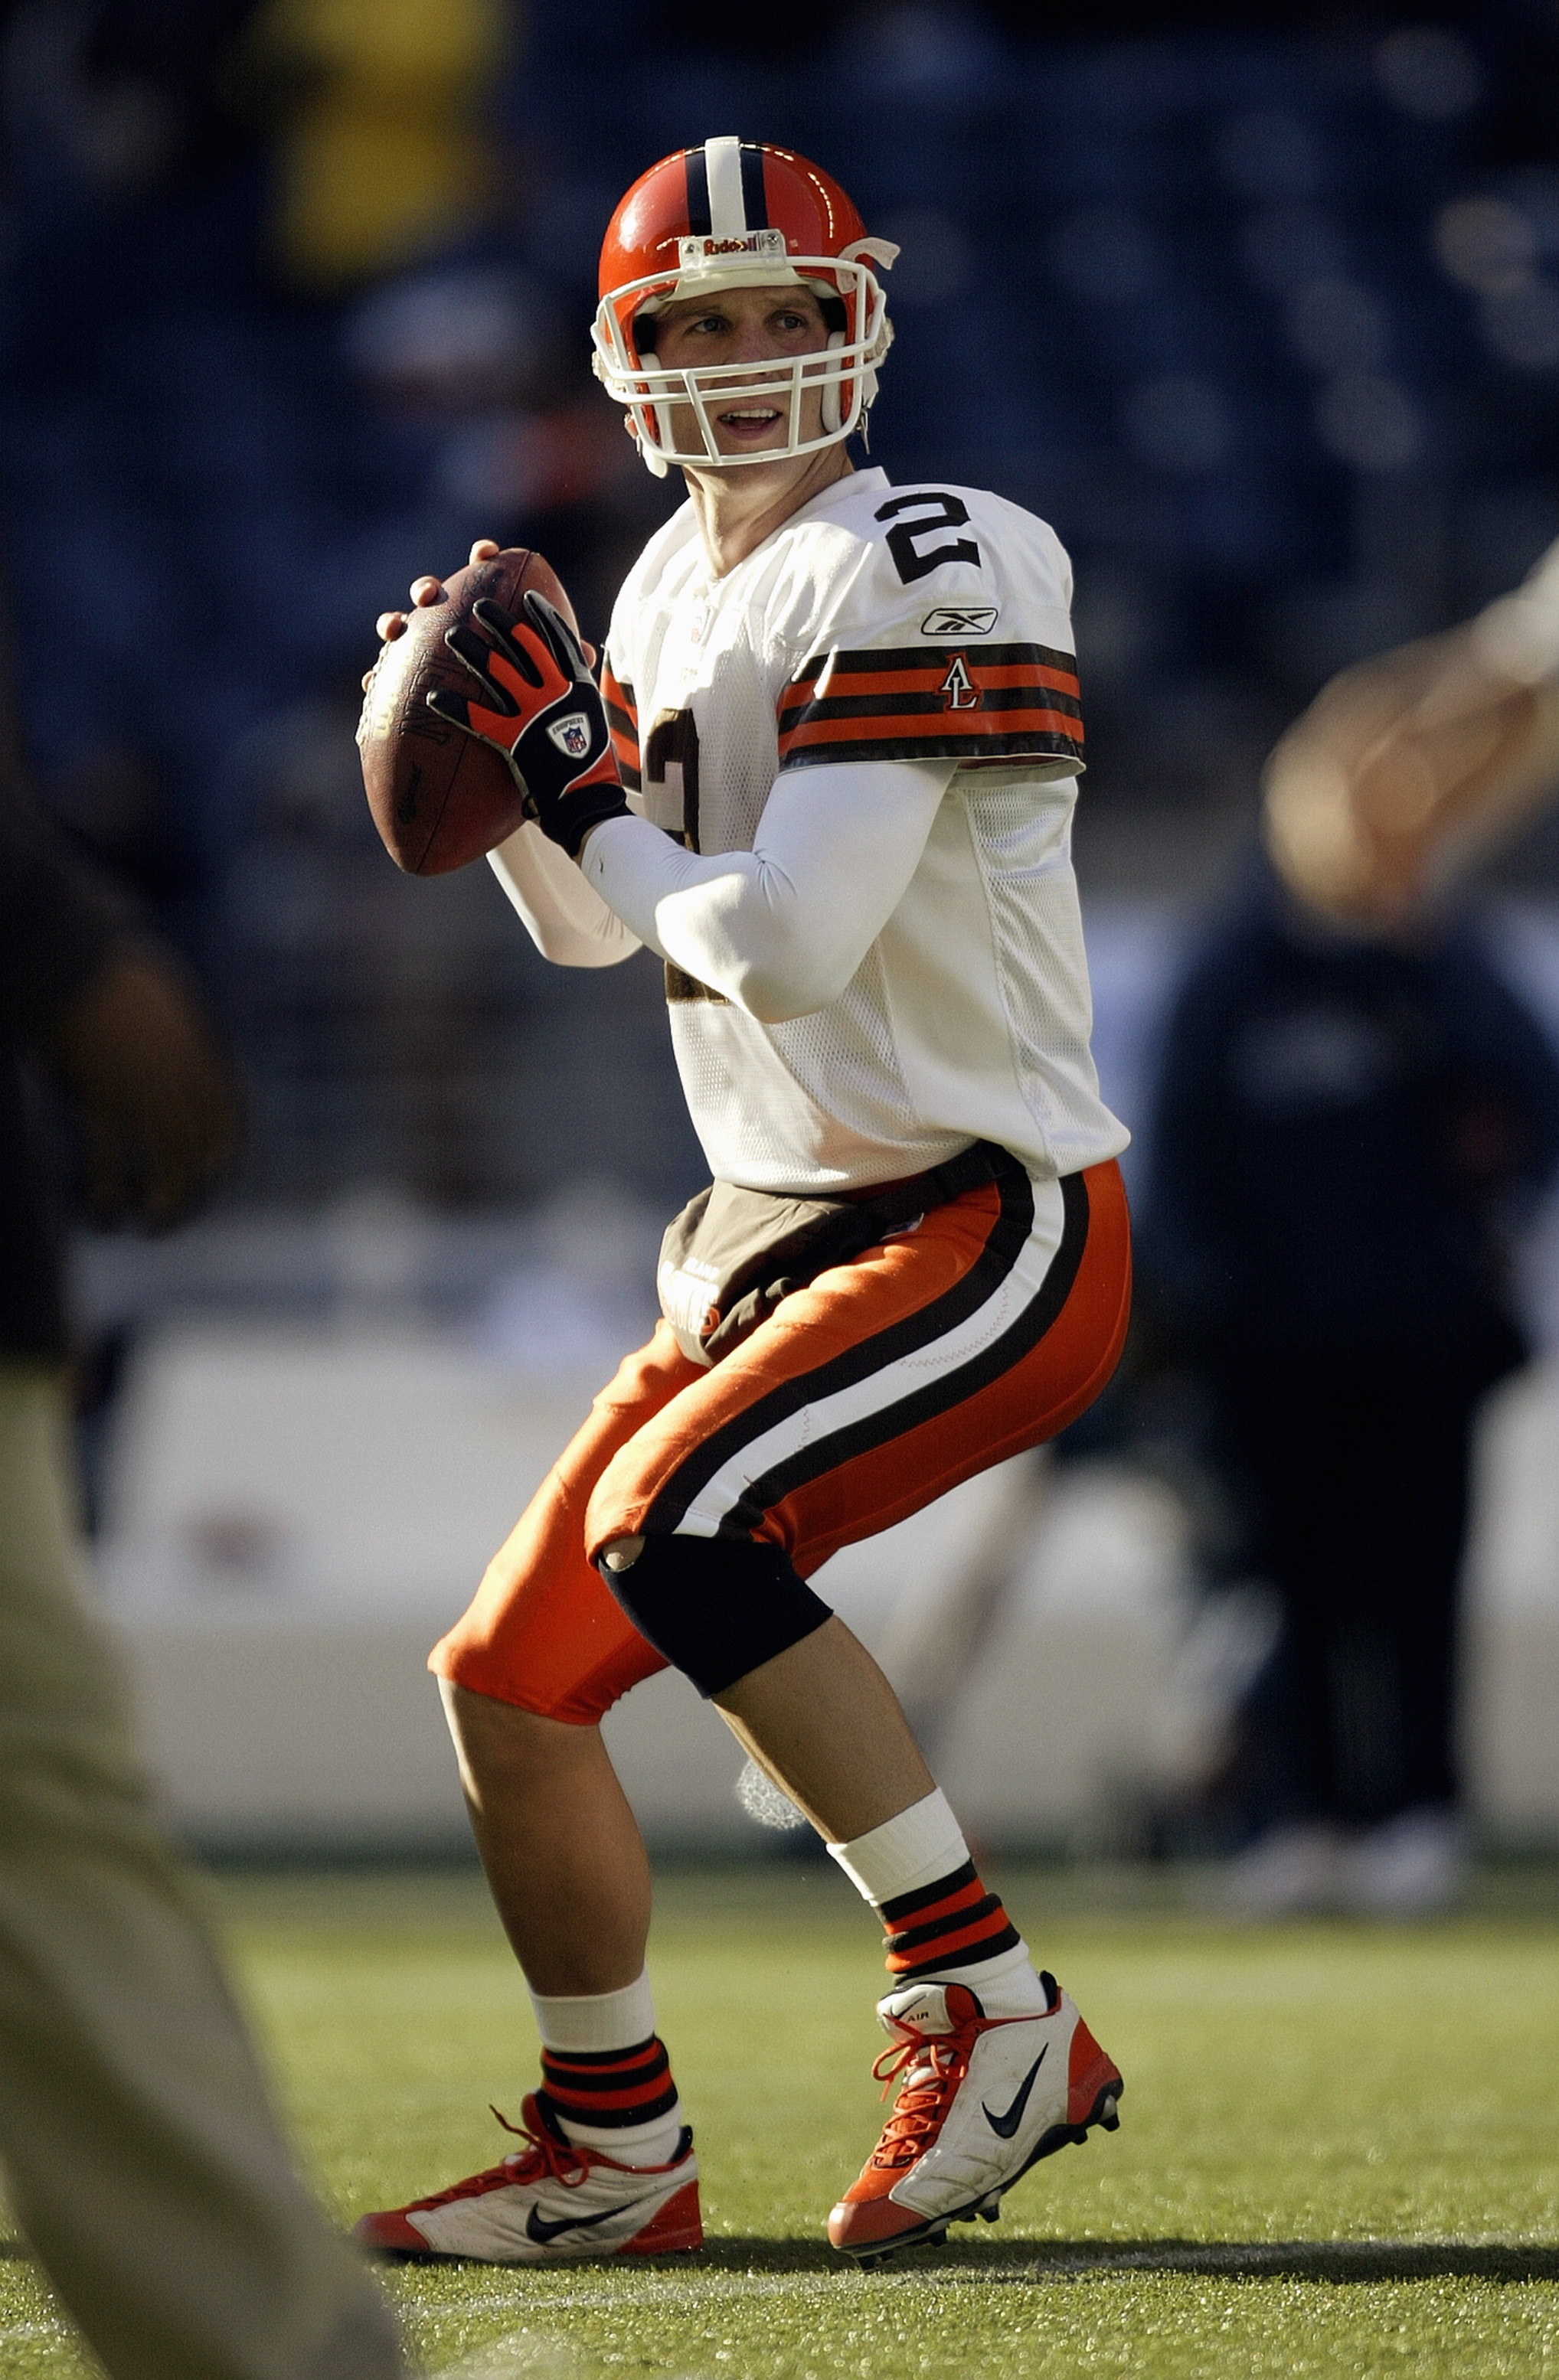 SEATTLE - NOVEMBER 30:  Quarterback Tim Couch #2 of the Cleveland Browns moves back to pass during the game against the Seattle Seahawks on November 30 2003 at Seahawks Stadium in Seattle, Washington. The Seahawks defeated the Browns 34-7. (Photo by Otto